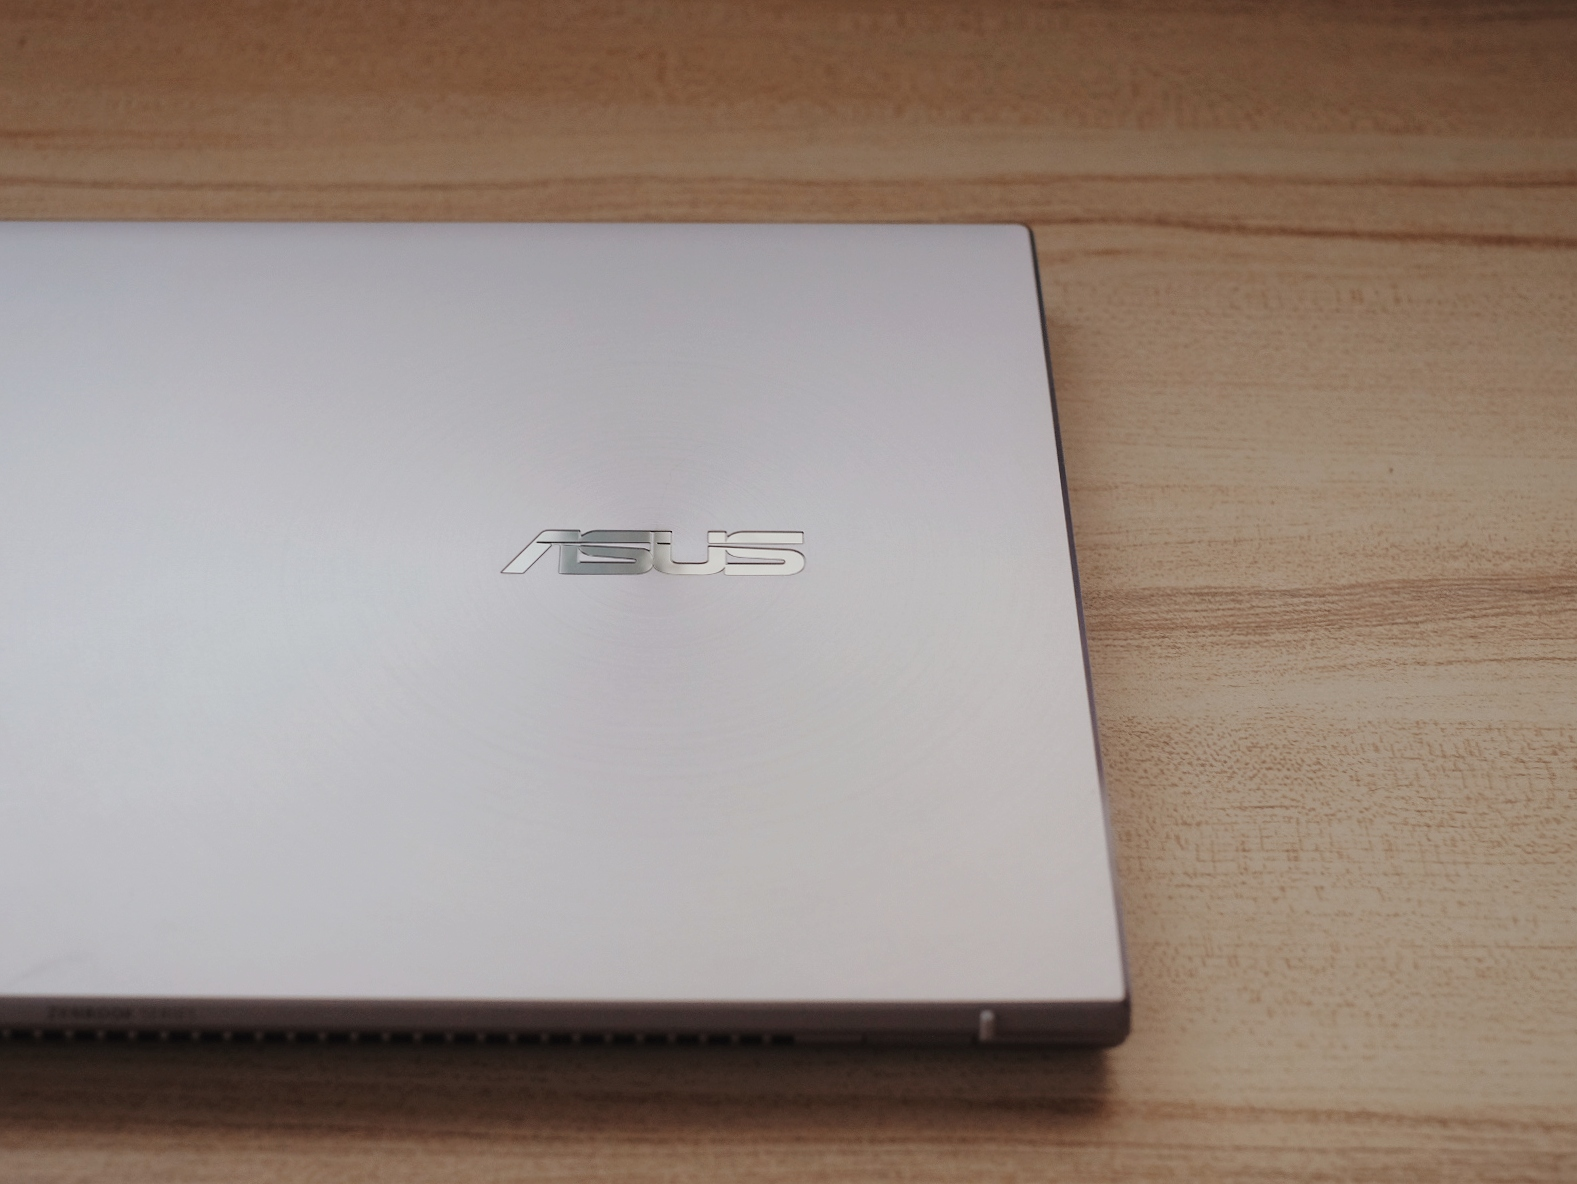 Asus Zenbook UX425 Lilac Mist Review, Lifestyle Philippine Price